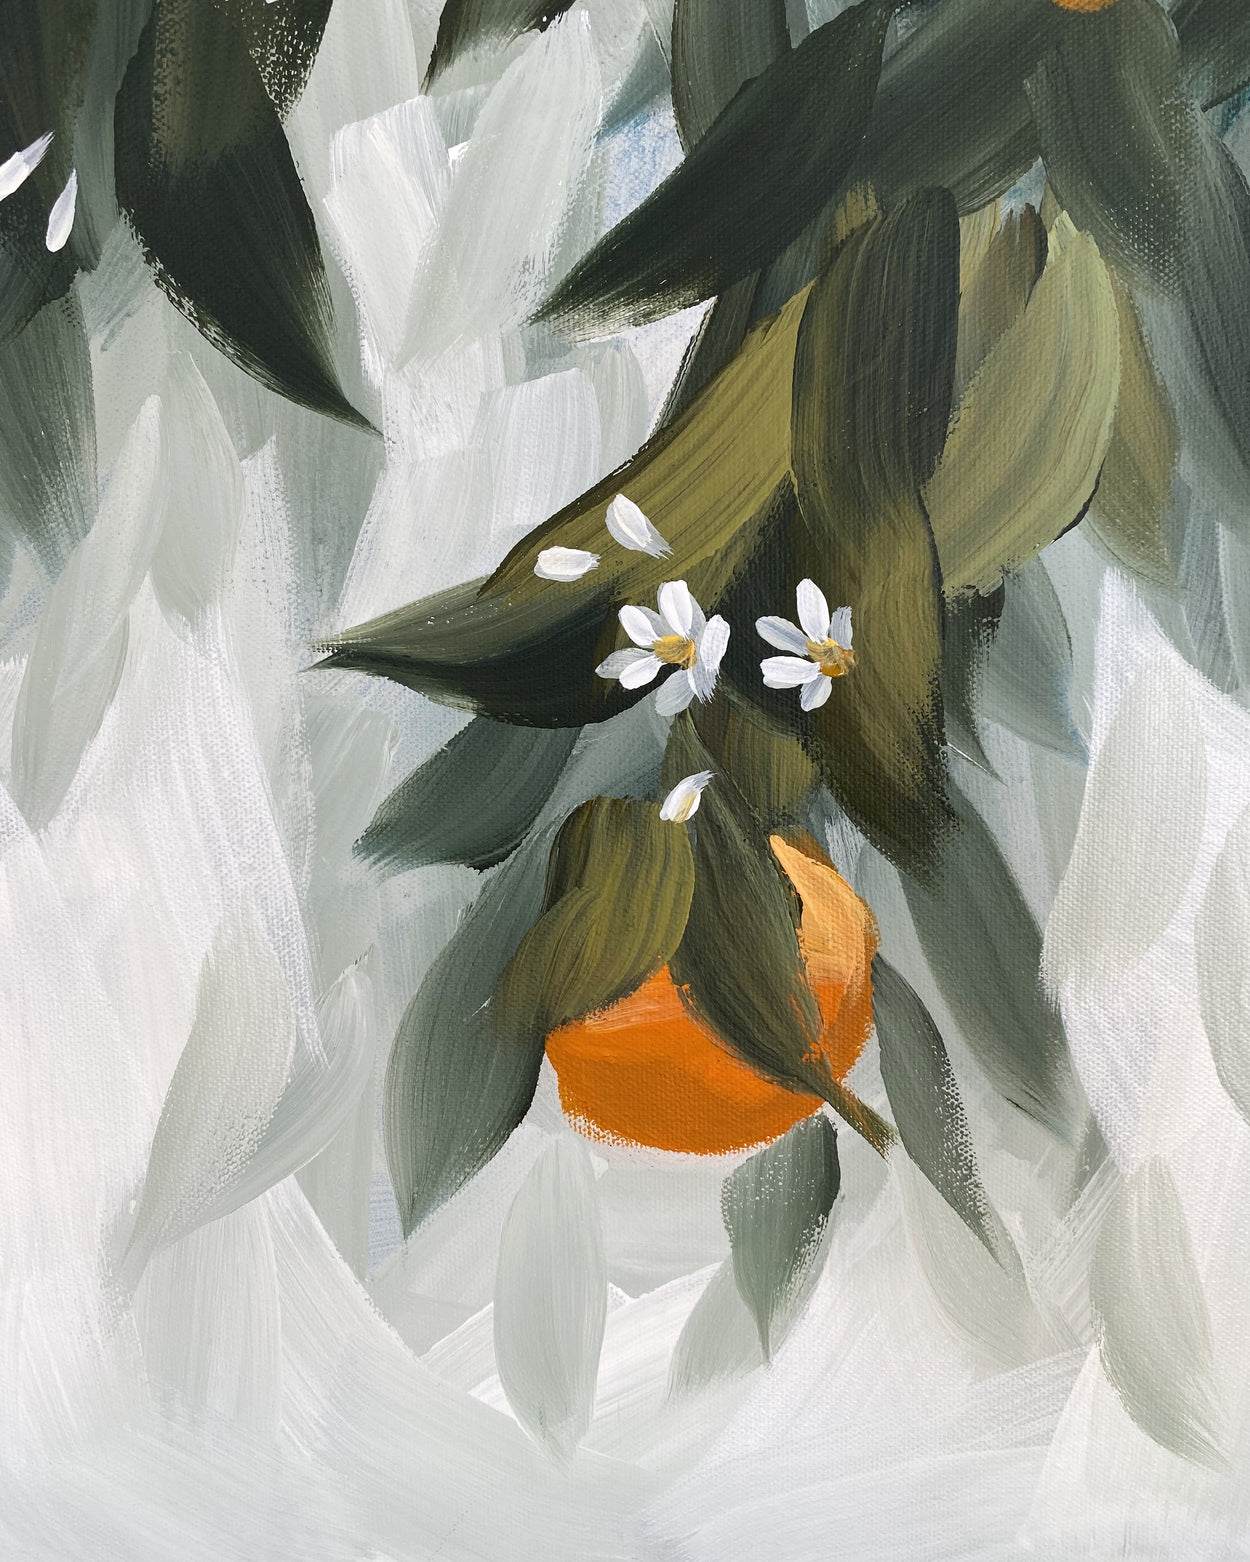 Oranges and Blossoms III